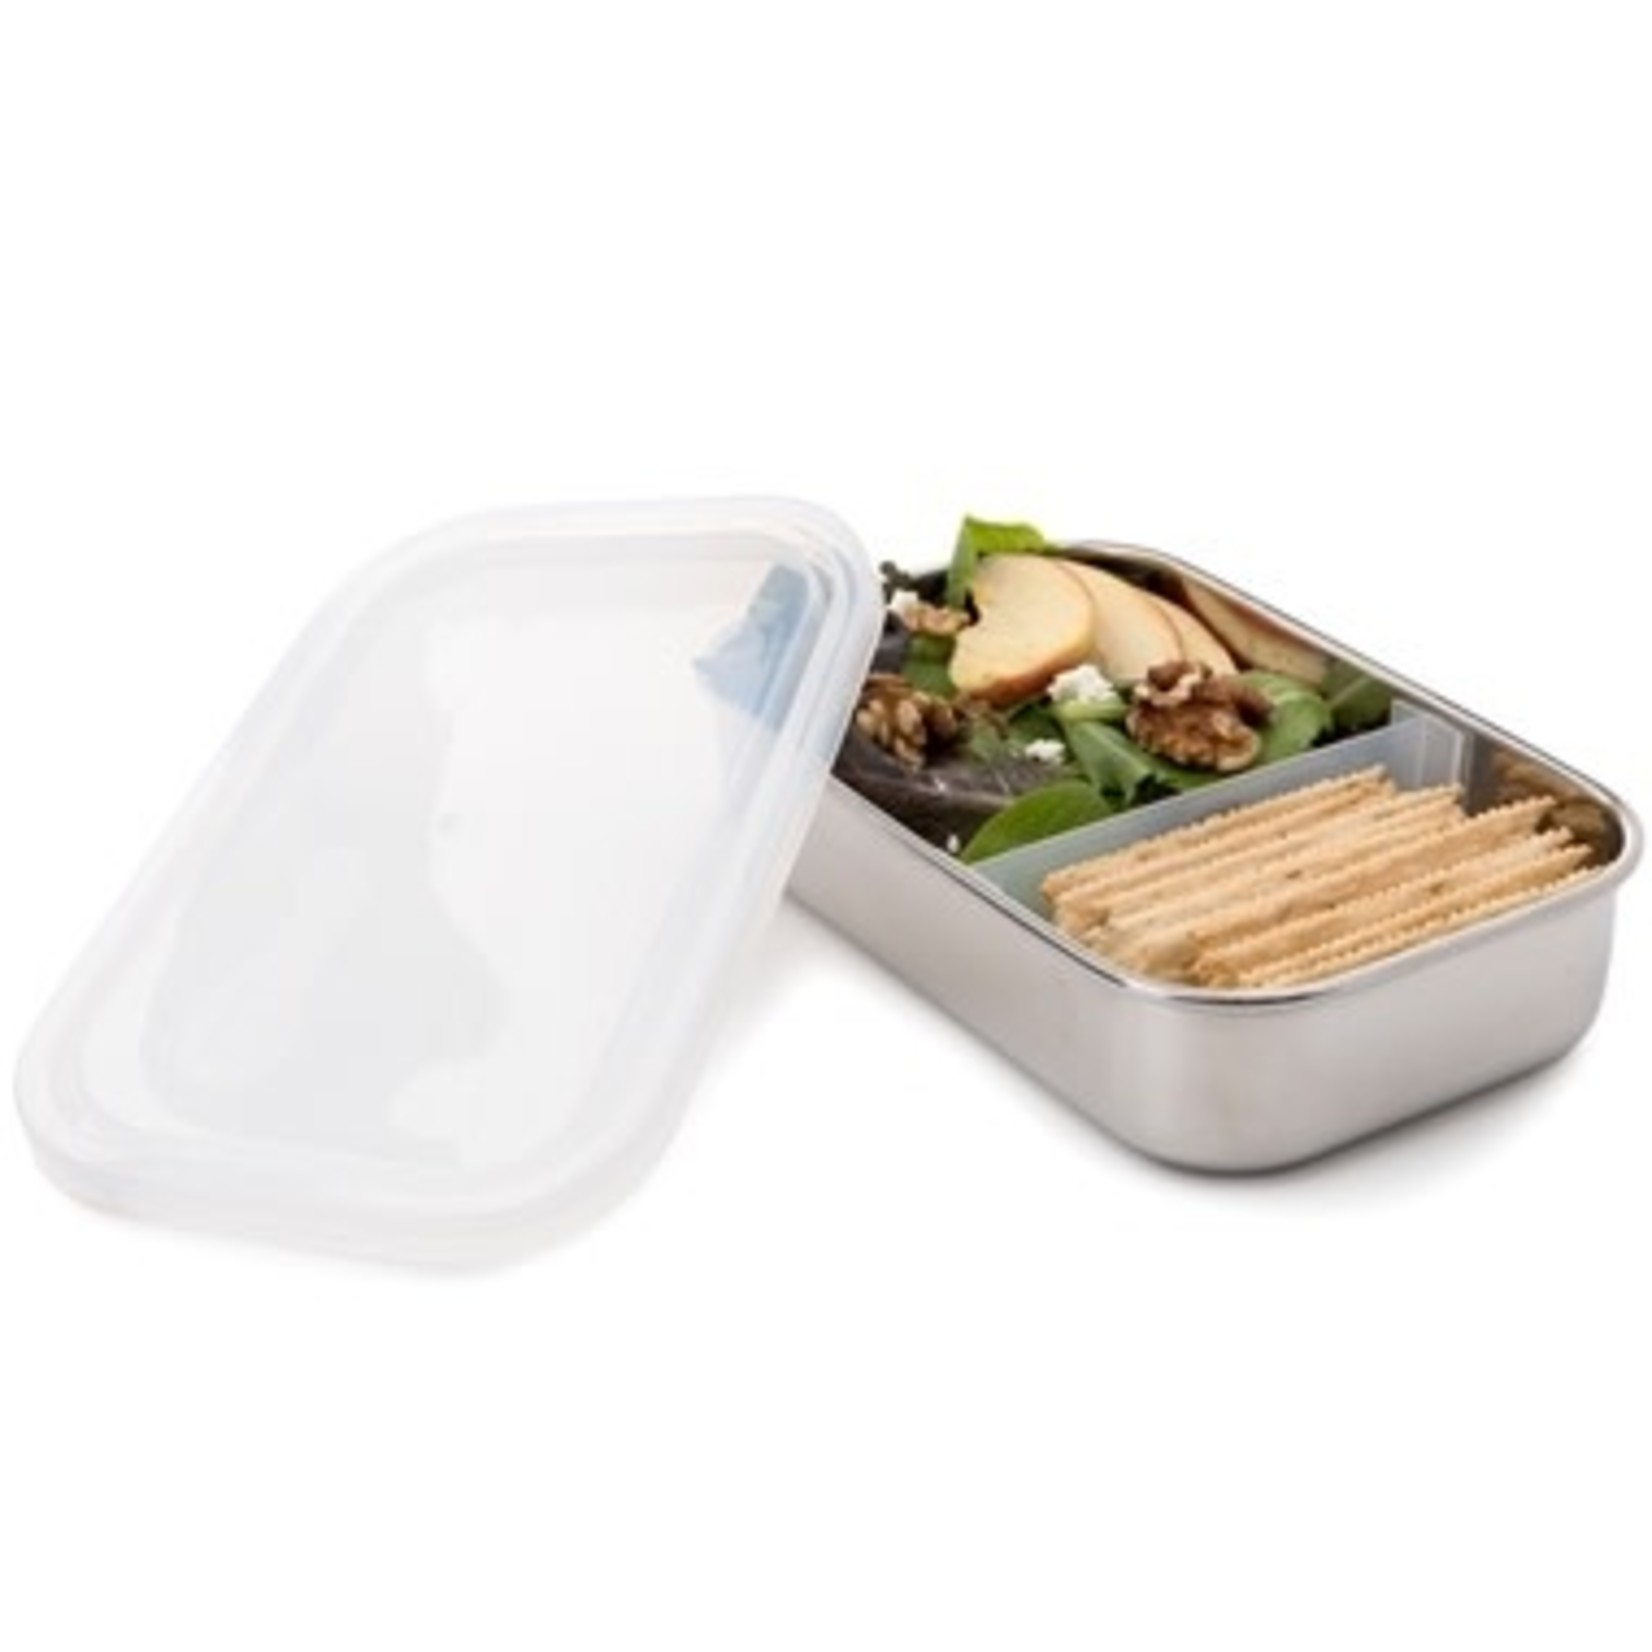 U-KONSERVE Divided Rectangle Container - Clear (25oz)